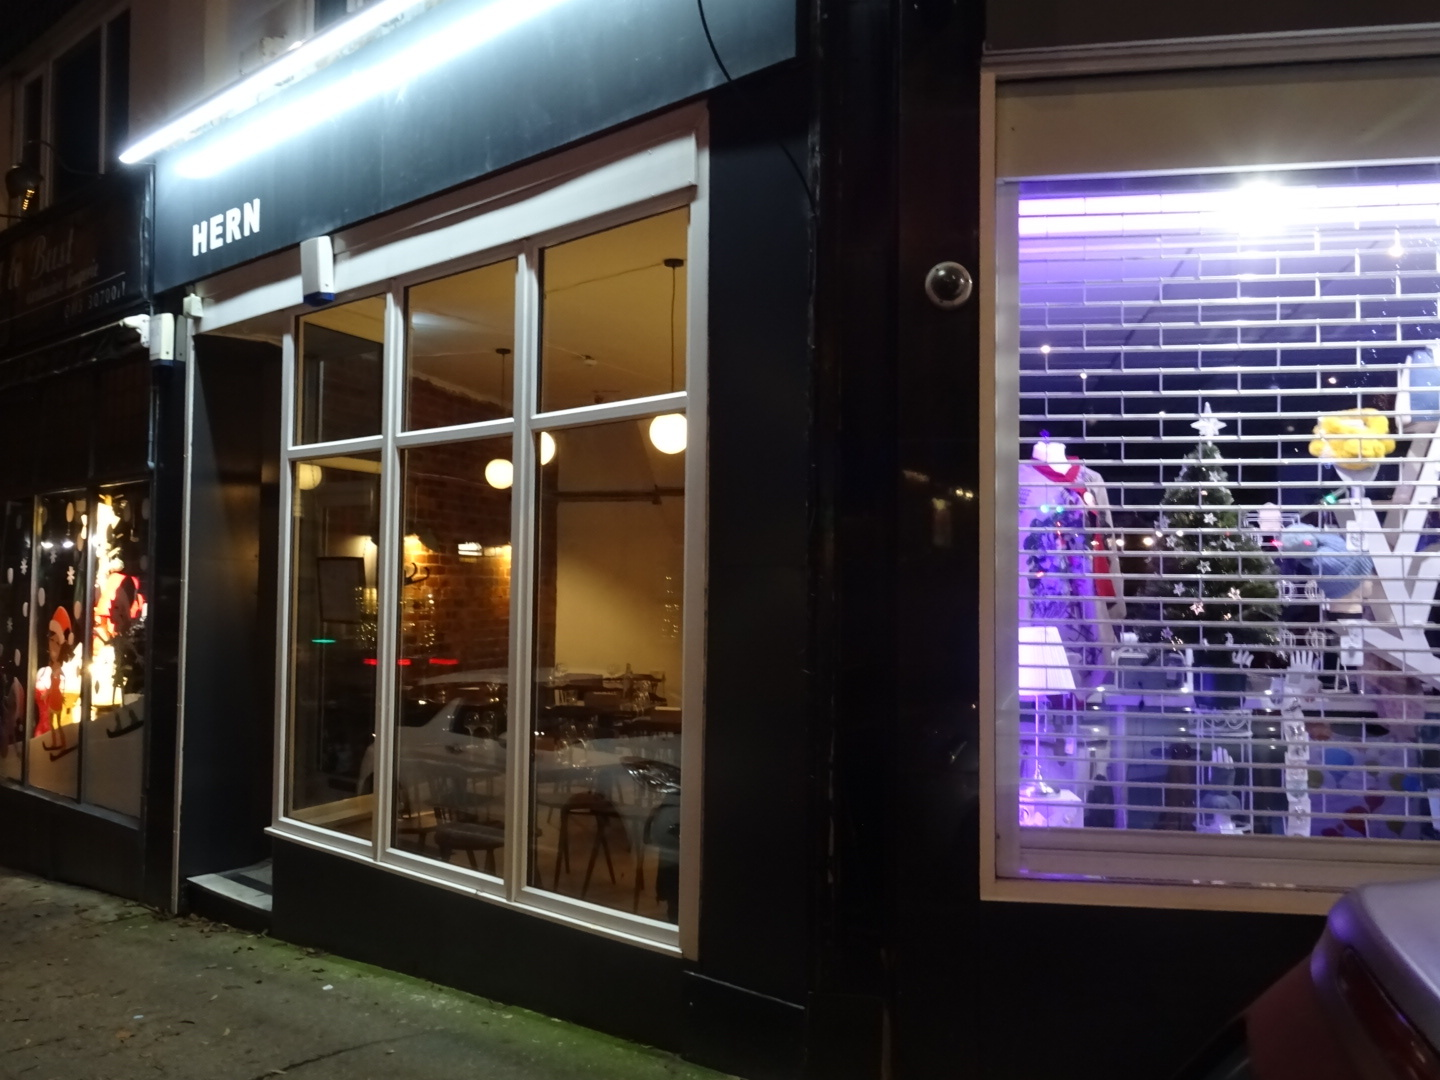 Relaxed Dining At Its Finest Hern Chapel Allerton Reviewed